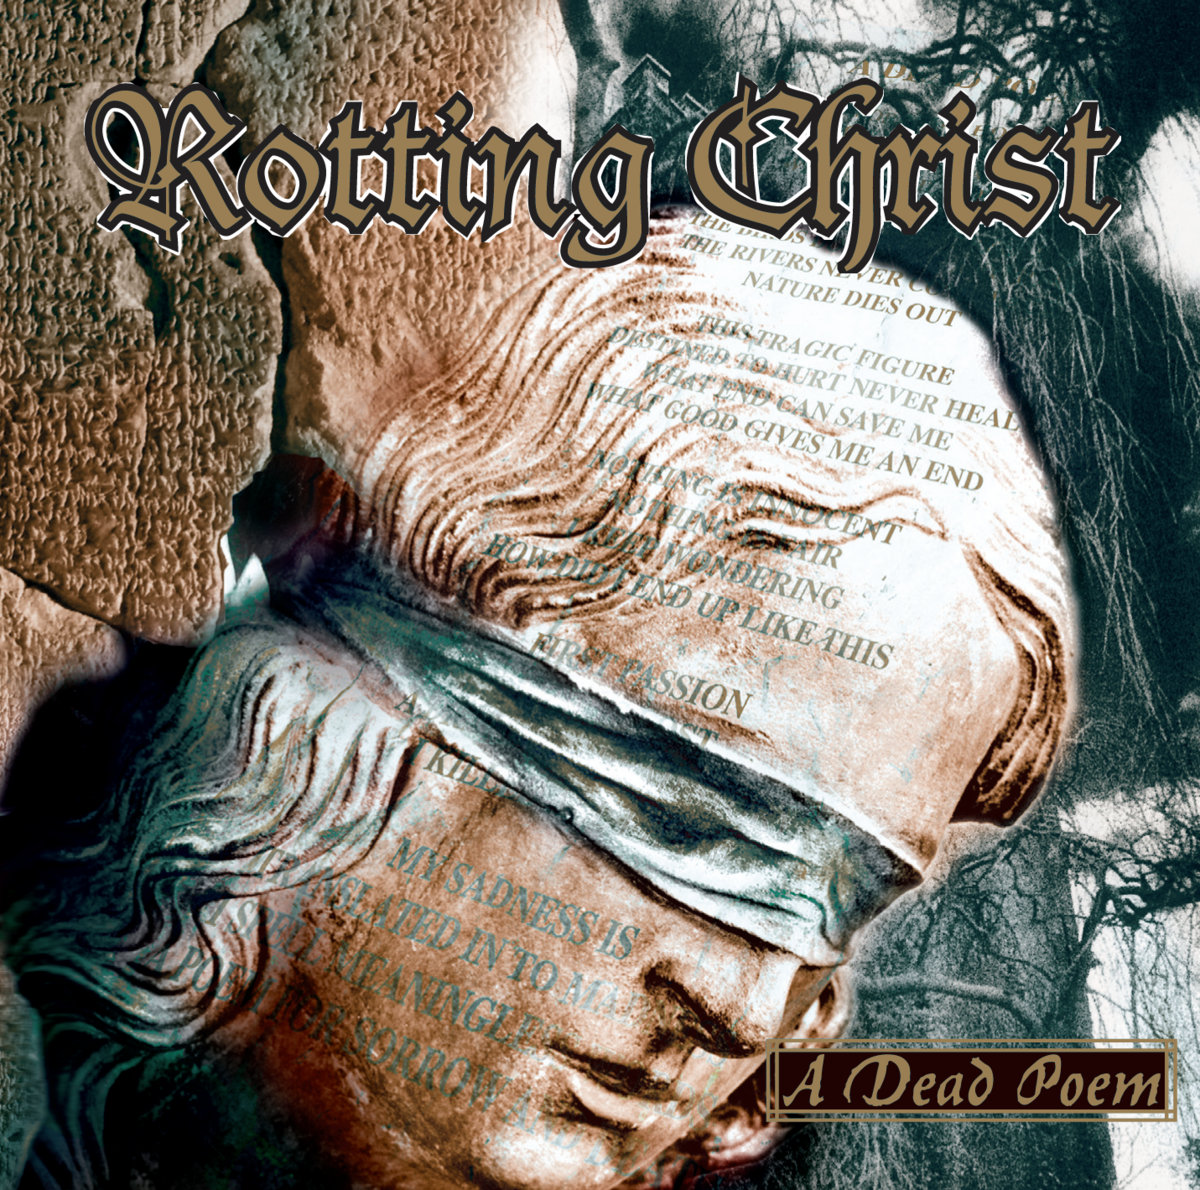 Rotting Christ - A Dead Poem (Slipcase+Bonustracks)